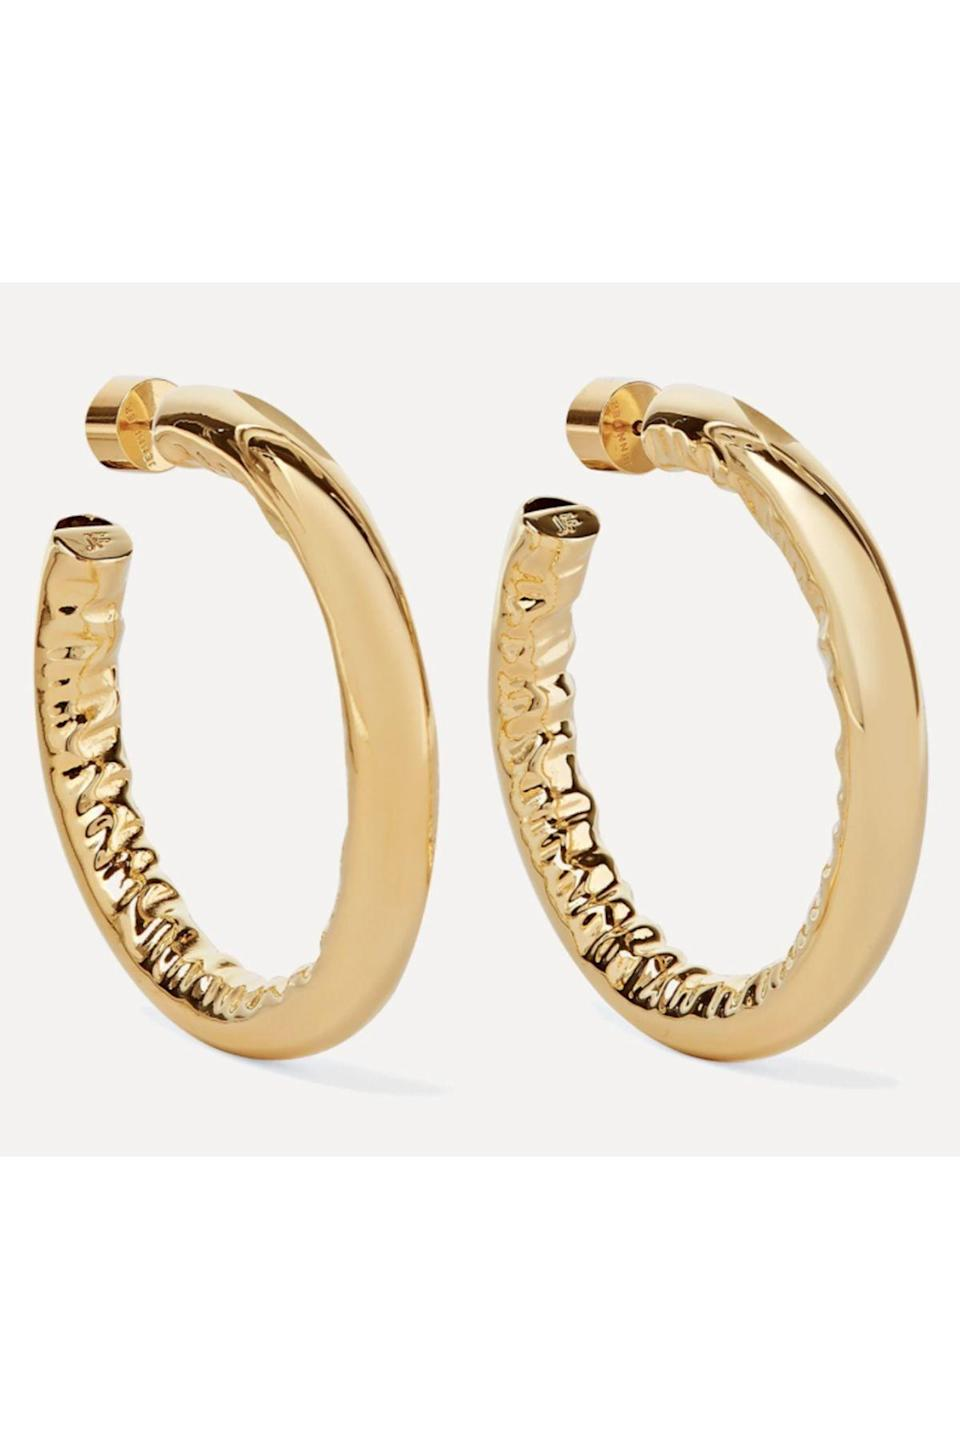 """<p><strong>Jennifer Fisher</strong></p><p>net-a-porter.com</p><p><strong>$375.00</strong></p><p><a href=""""https://go.redirectingat.com?id=74968X1596630&url=https%3A%2F%2Fwww.net-a-porter.com%2Fen-us%2Fshop%2Fproduct%2Fjennifer-fisher%2F1-5-baby-jennifer-gold-plated-hoop-earrings%2F1228093&sref=https%3A%2F%2Fwww.townandcountrymag.com%2Fstyle%2Fjewelry-and-watches%2Fg33469392%2Fthe-weekly-covet-july-31-2020%2F"""" rel=""""nofollow noopener"""" target=""""_blank"""" data-ylk=""""slk:Shop Now"""" class=""""link rapid-noclick-resp"""">Shop Now</a></p><p>When you think hoops Jennifer Fisher is the top of that list! These pair are her iconic thick gold but in a smaller silhouette, perfect for day to day.</p>"""